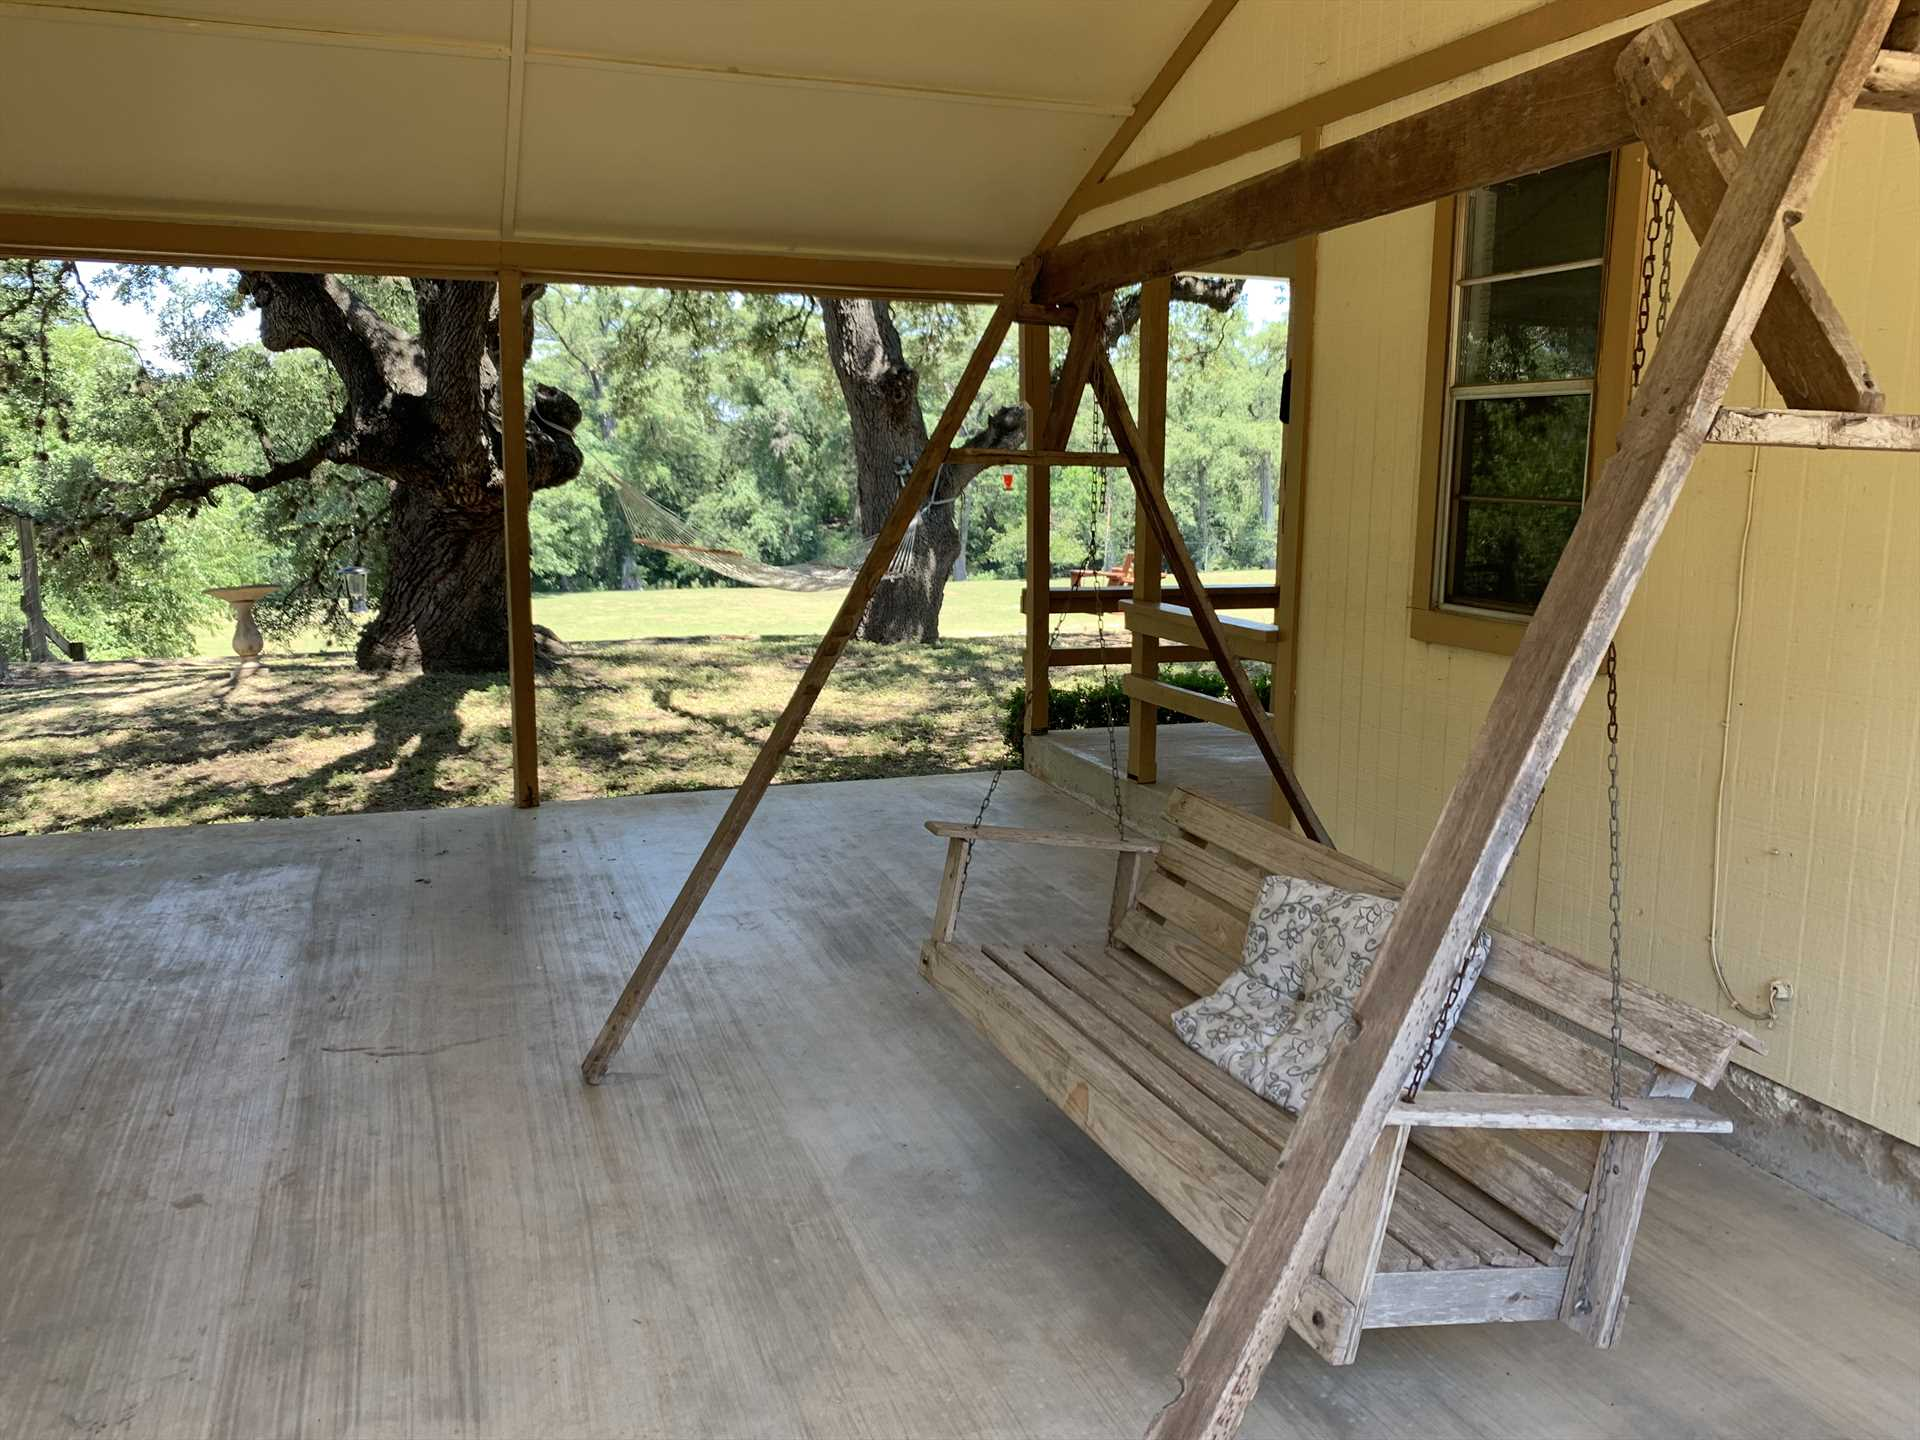 Your outdoor relaxation is assured at Lambert Park, with both a hammock and an intimate porch swing!